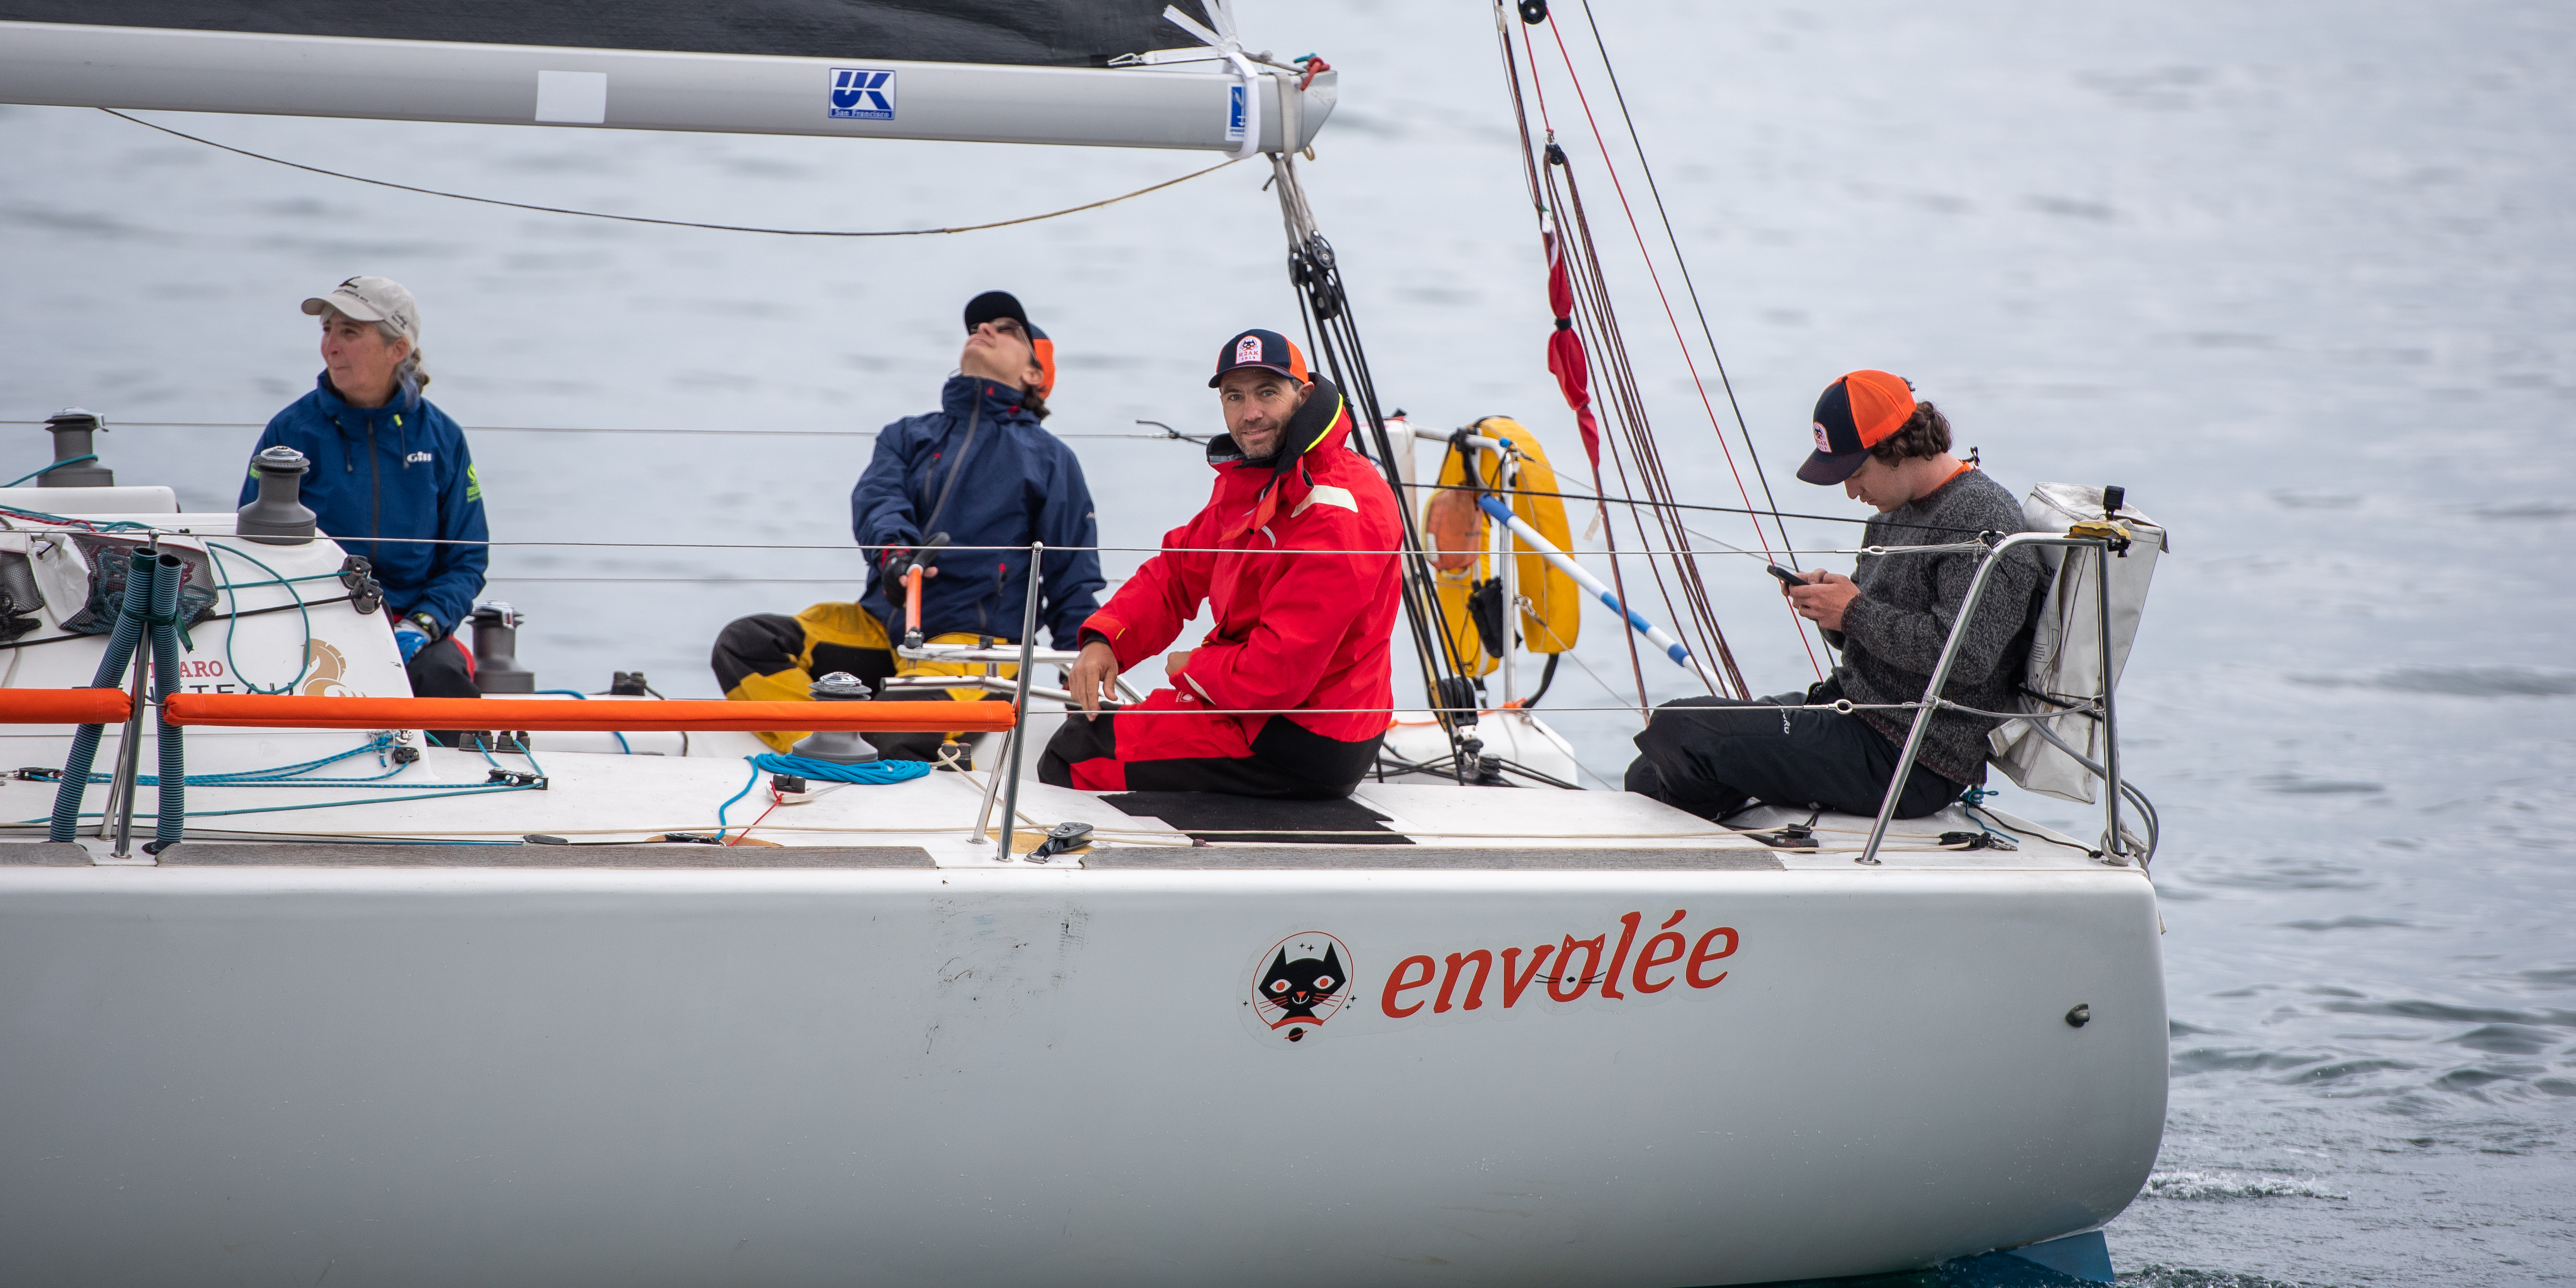 Swiftsure-25-May-2019-RMS-Media-by-Rob-Porter-27